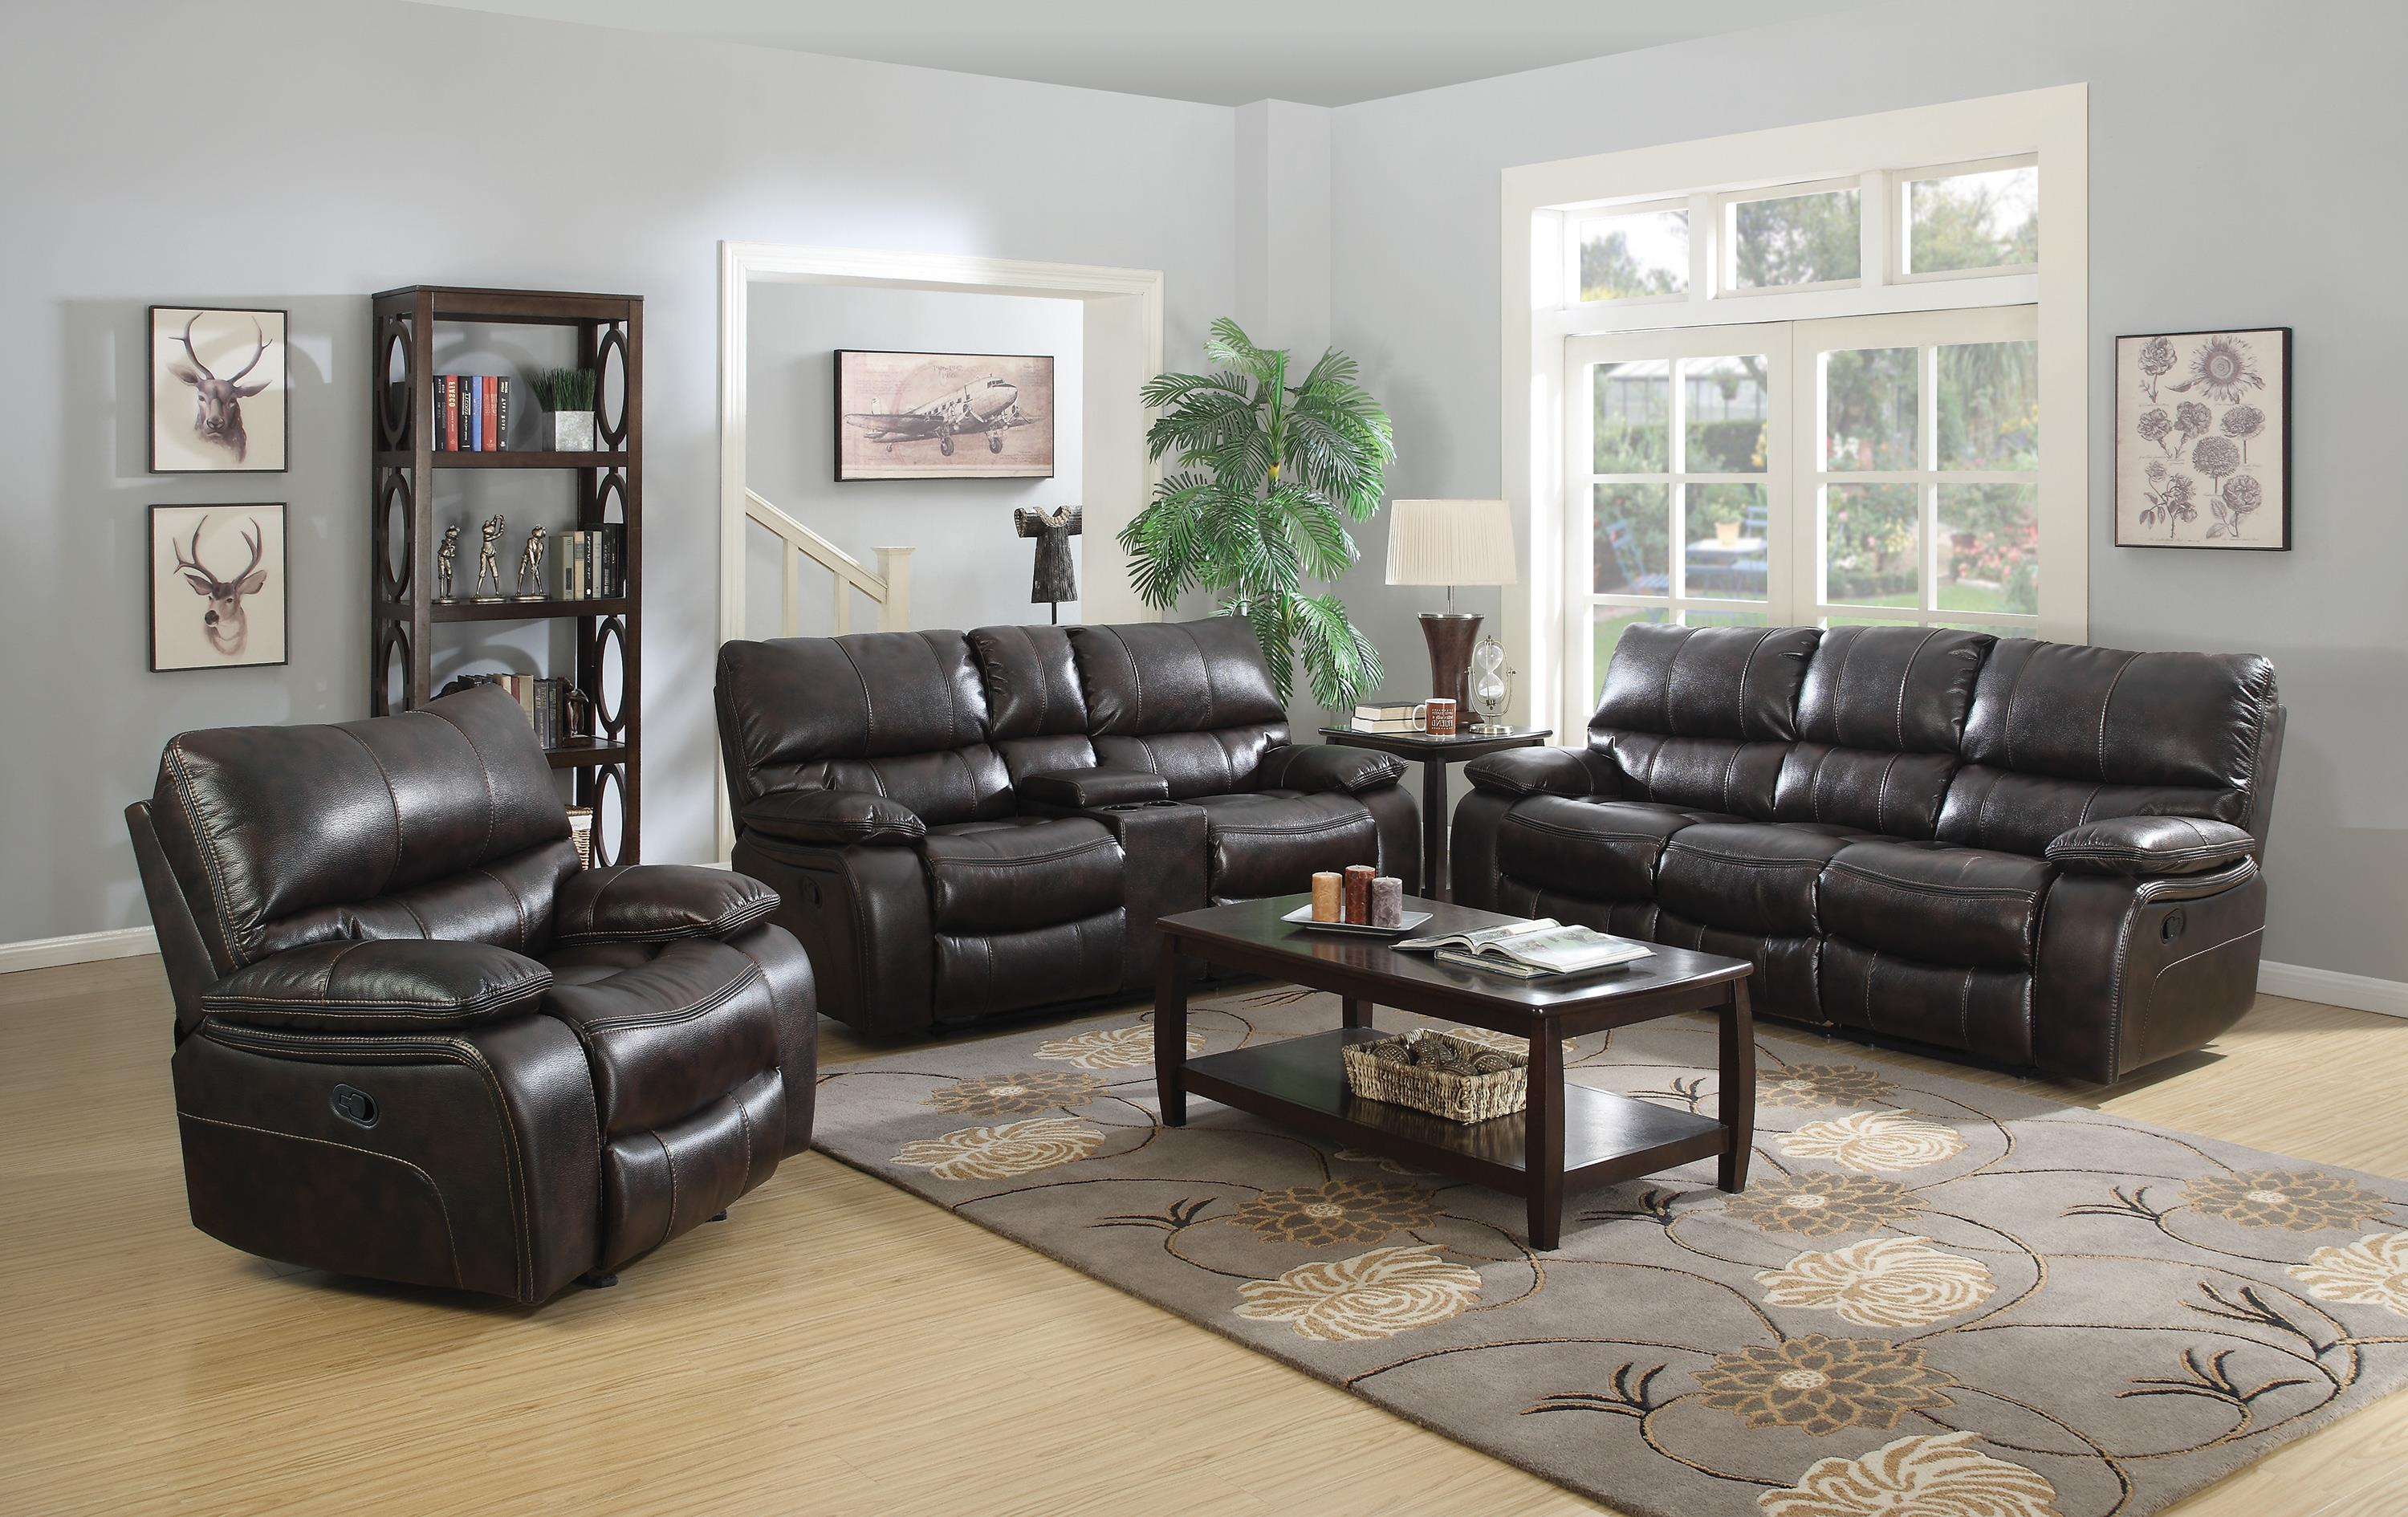 Coaster Willemse Reclining Living Room Group Value City Furniture Reclining Living Room Groups